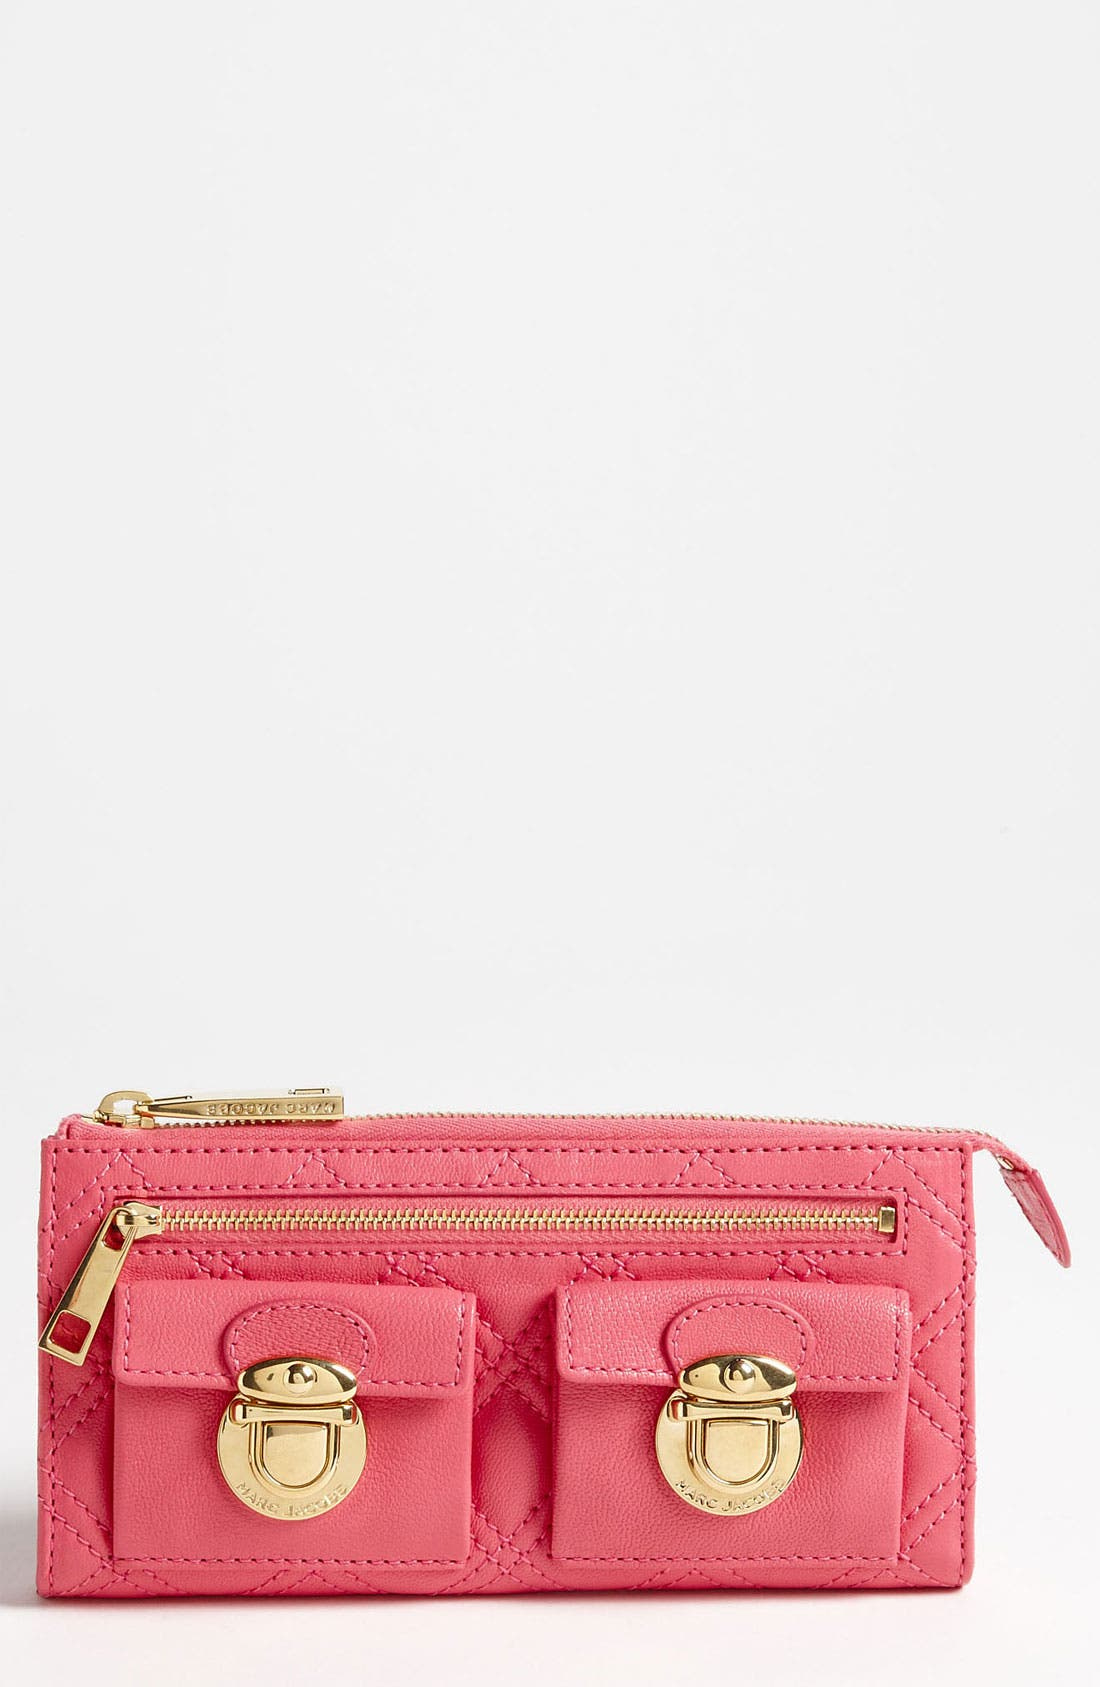 Main Image - MARC JACOBS Zip Clutch Wallet